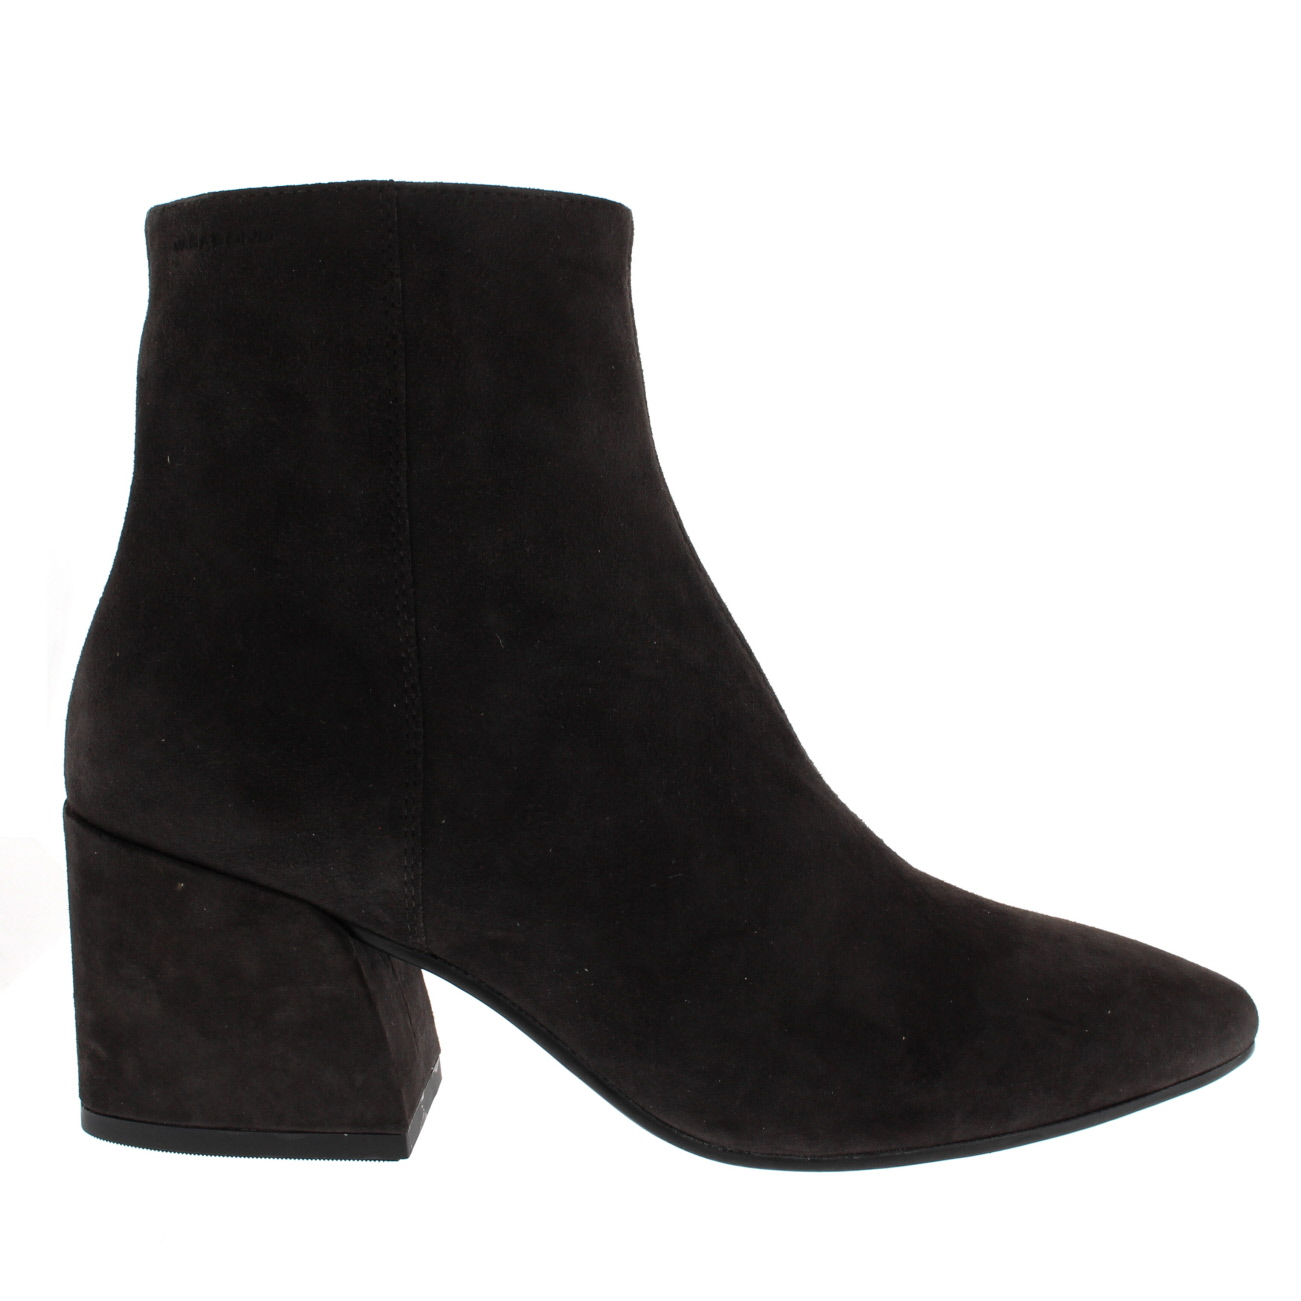 Womens Vagabond Olivia Fashion Winter Suede Pointed Toe Ankle Boots